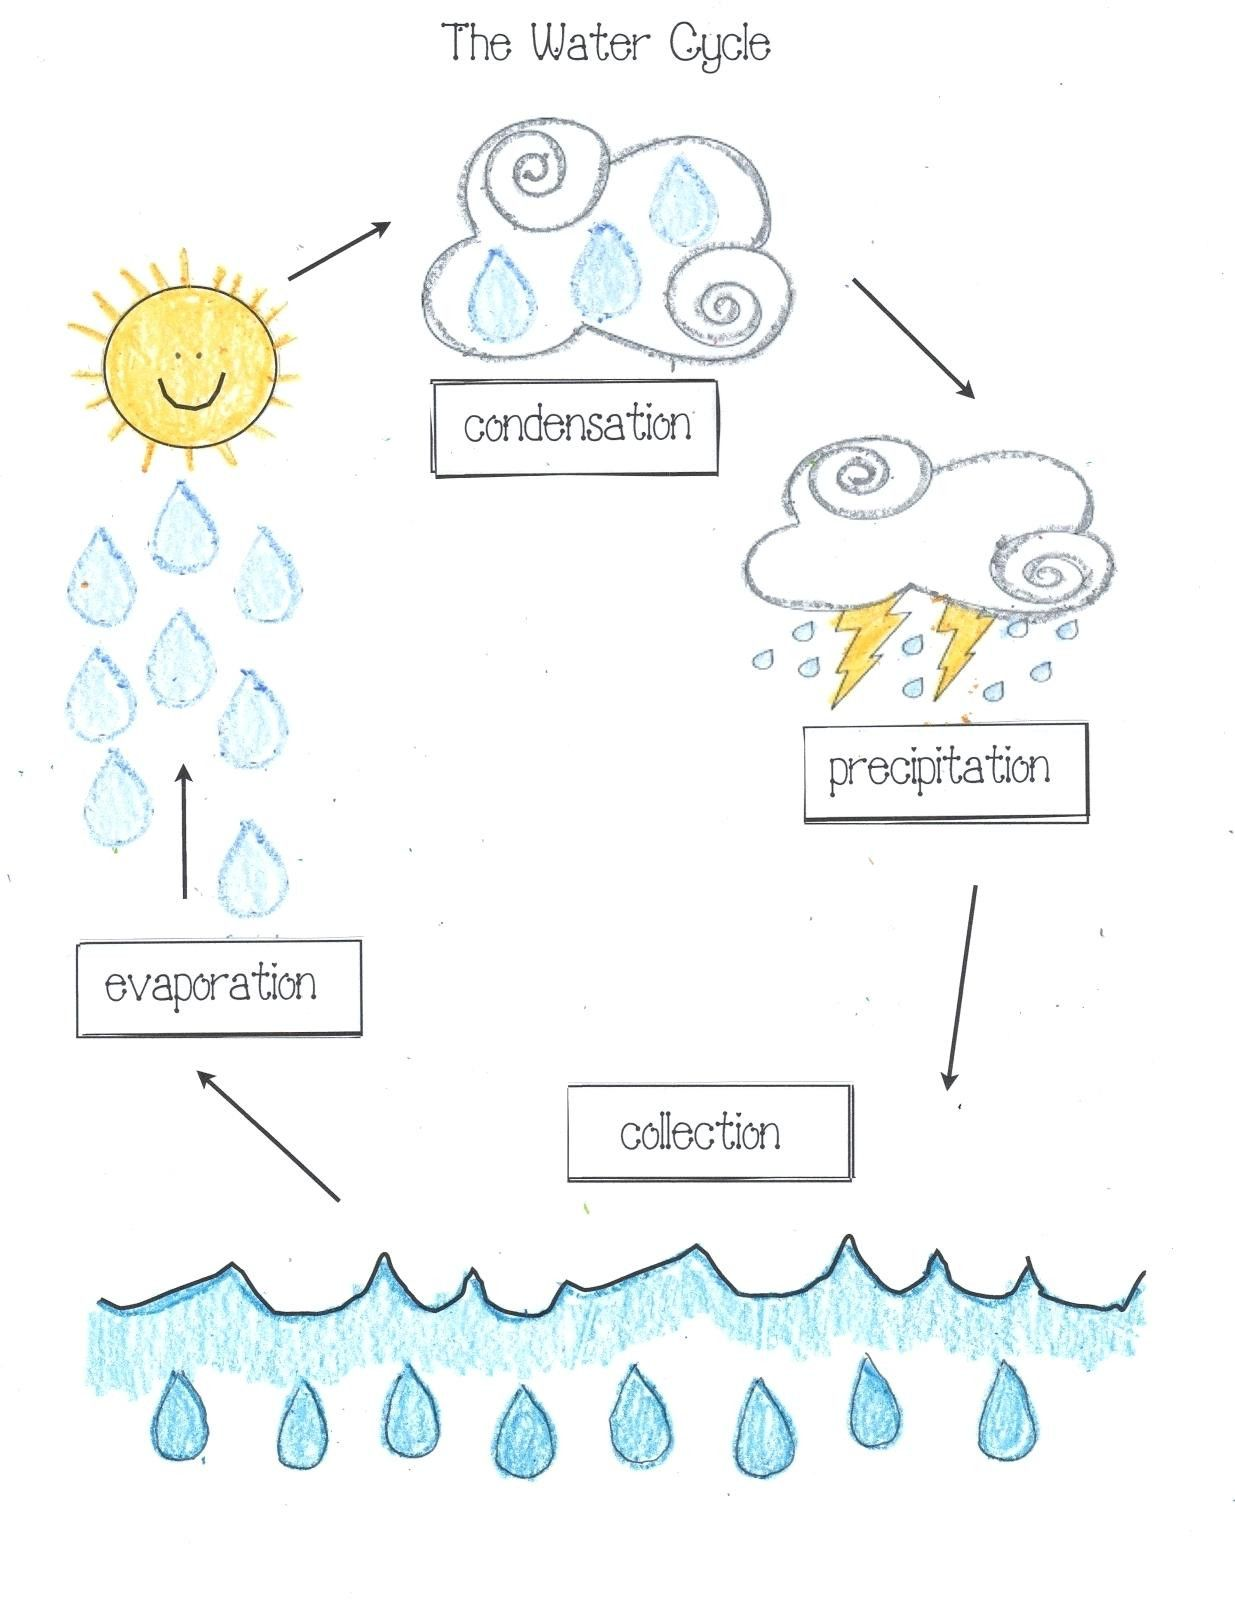 Carbon Cycle Diagram Worksheet In